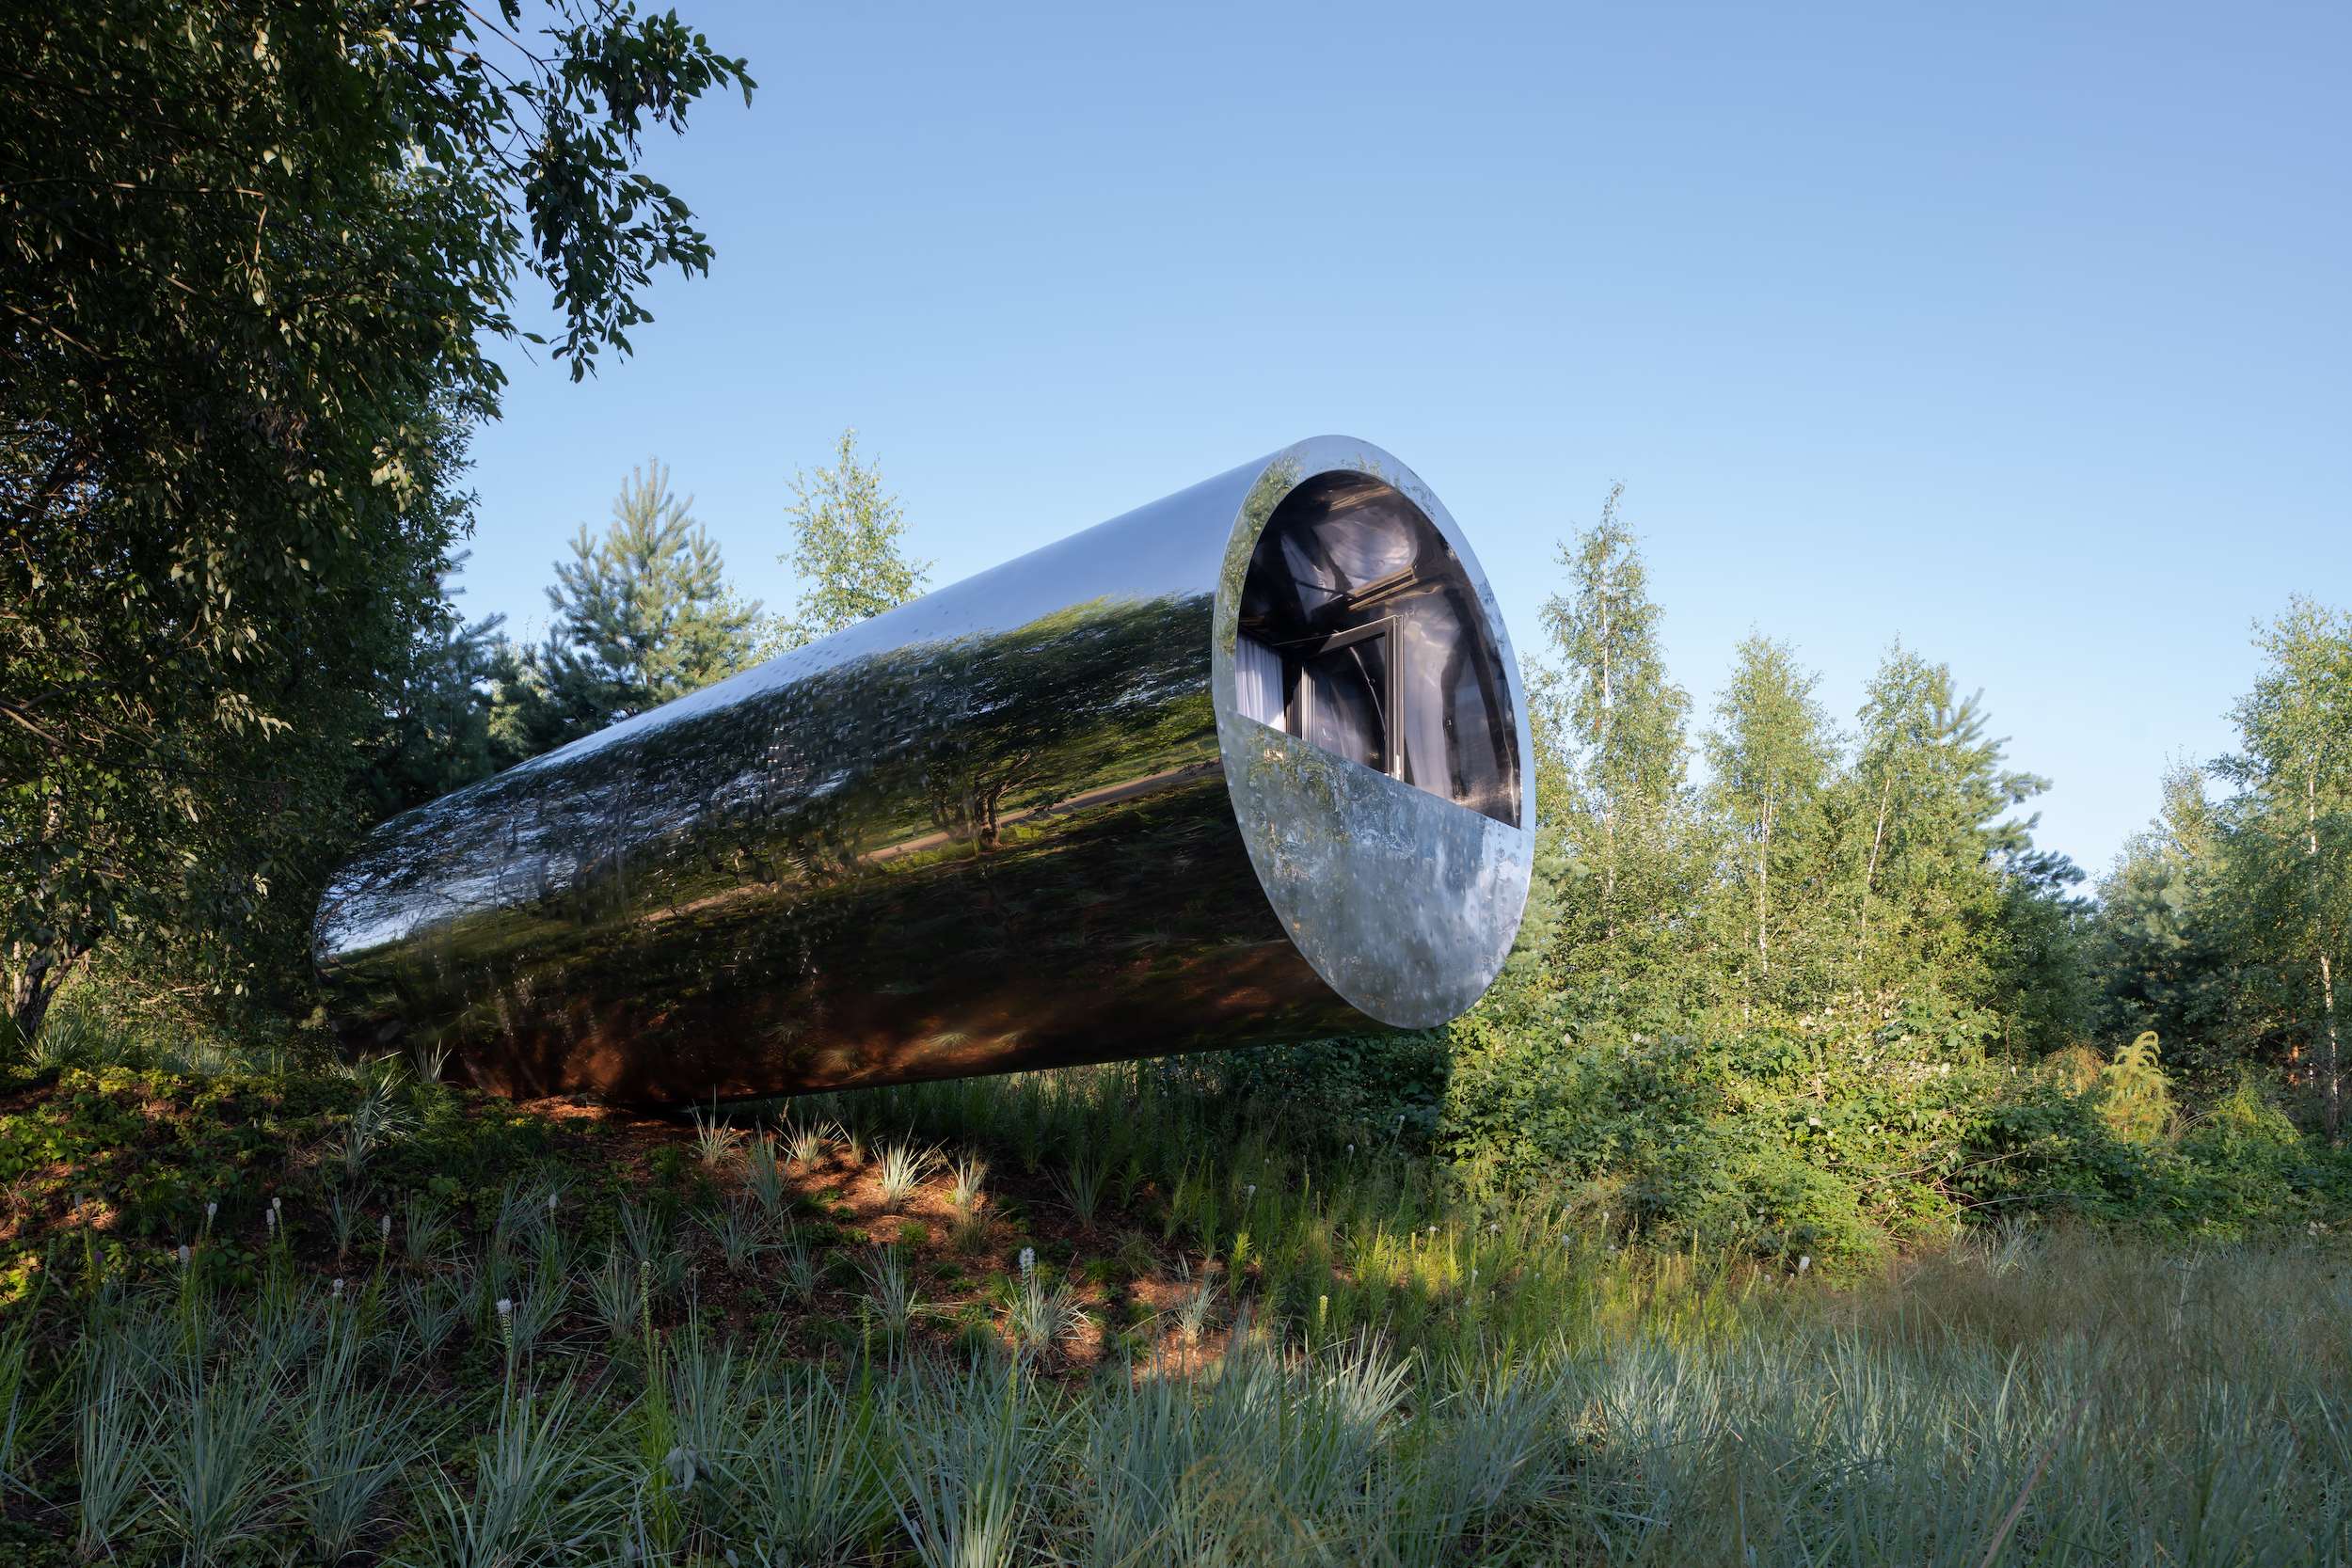 Russian Quintessential measures a total length of 12 m (39 ft) and has a width of 3.5 m (11 ft)